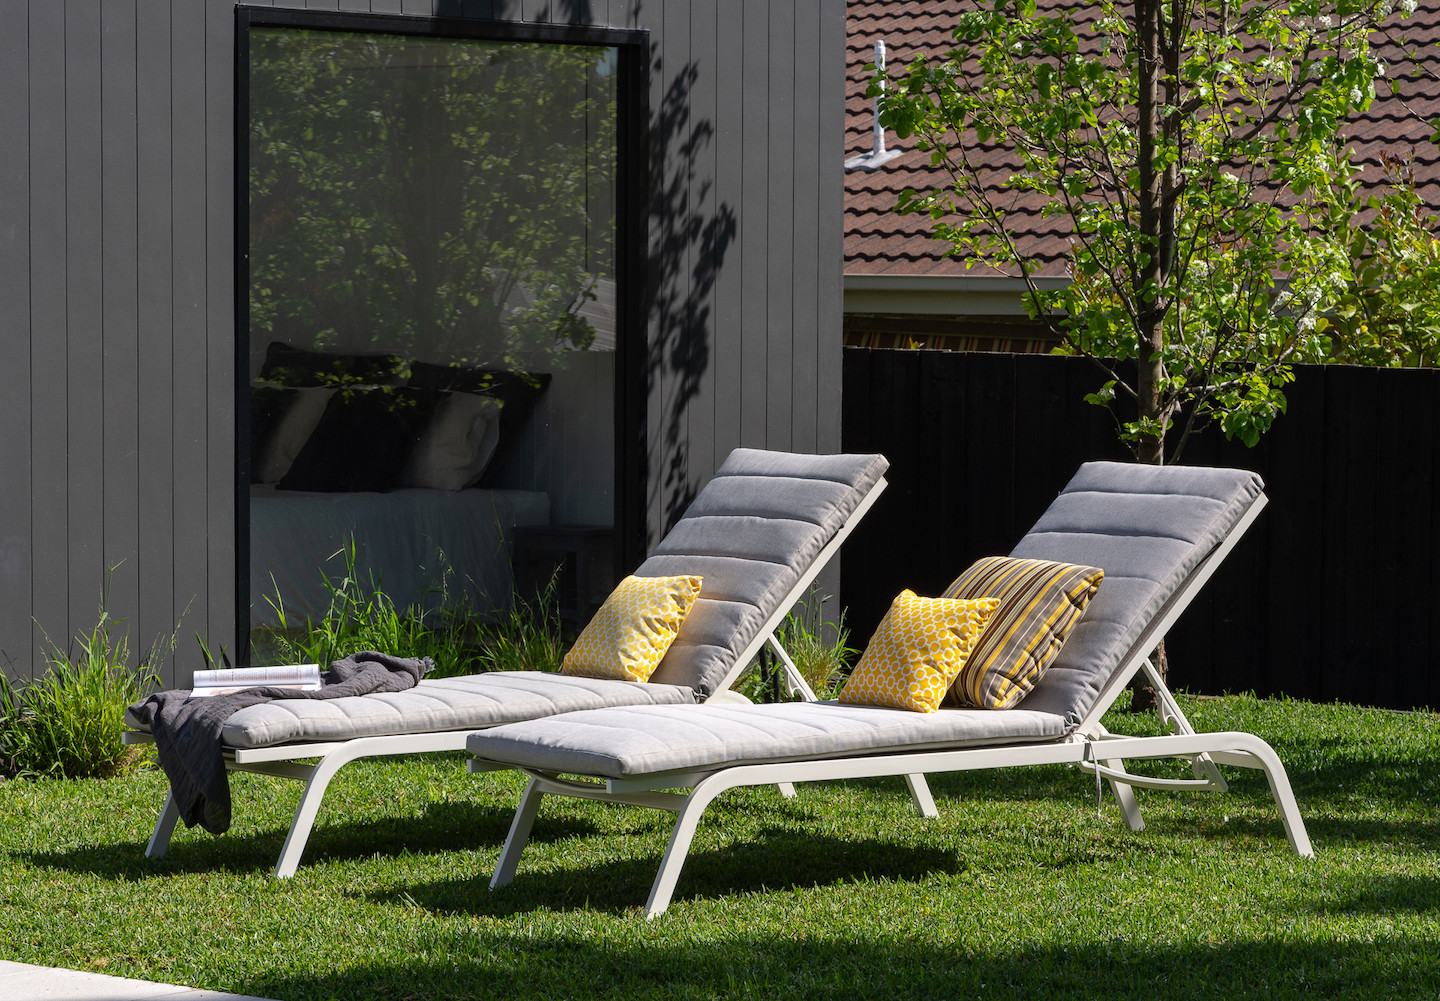 Cushion sunlounges